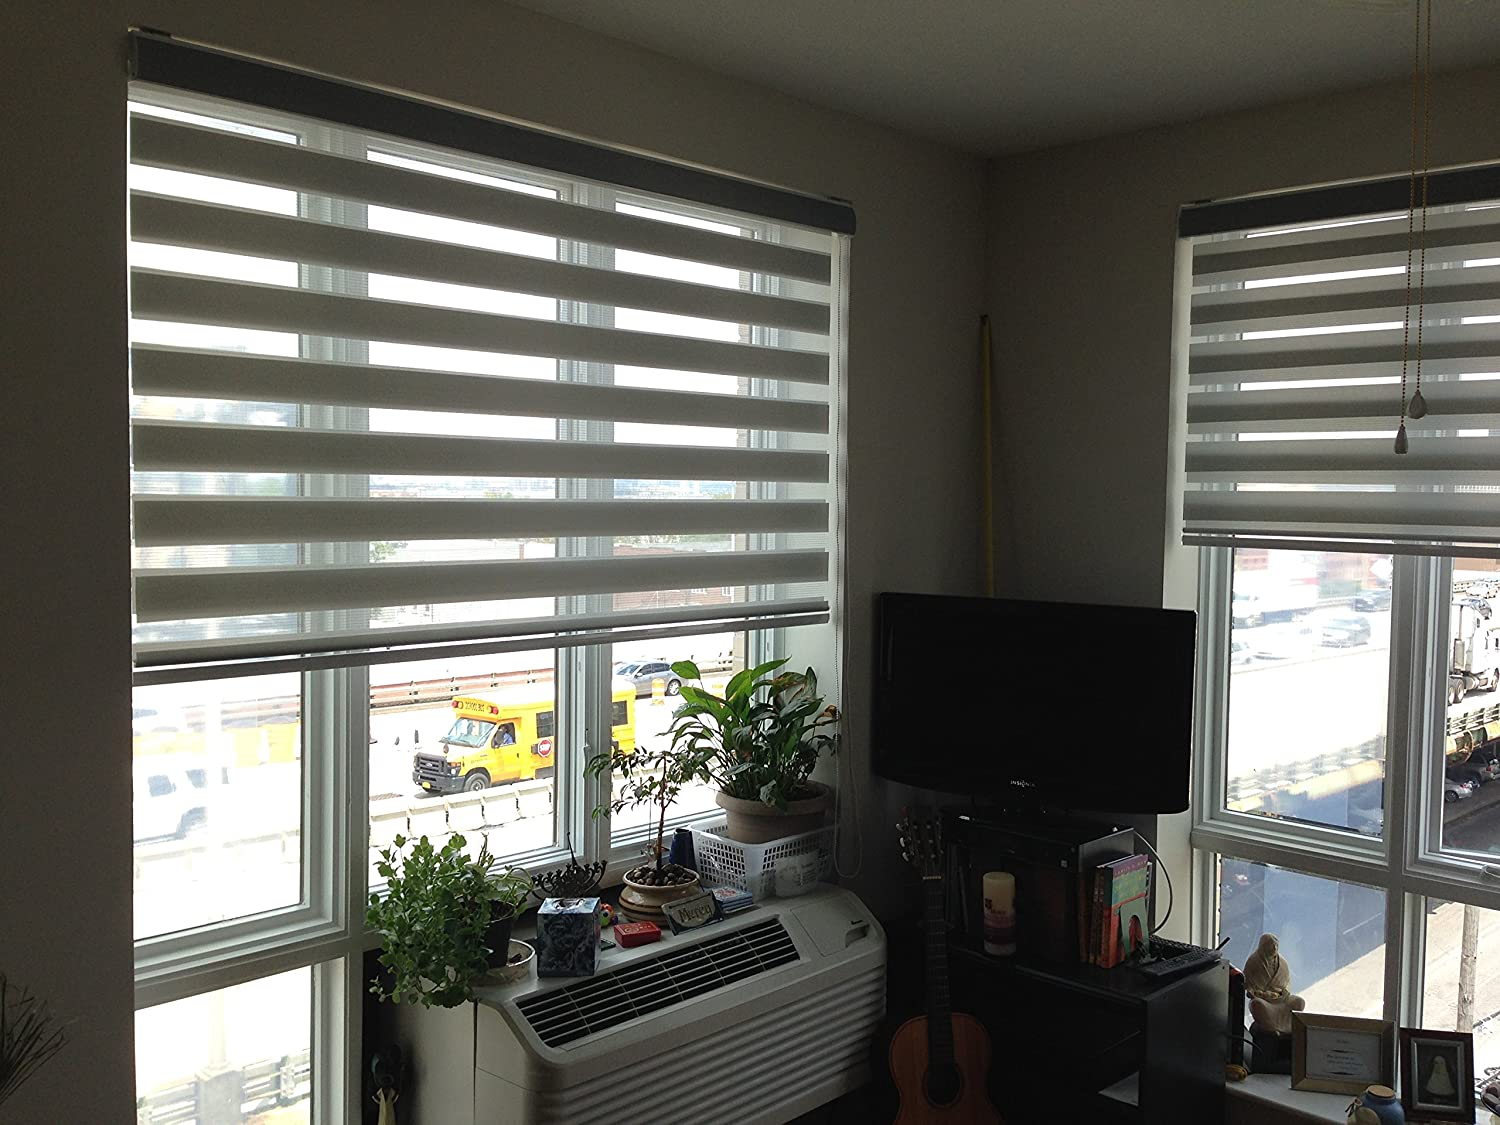 blinds promo of best code fresh win to blind ideas know net myhomedesign discount direct canada select alfouzan com getting coupon source